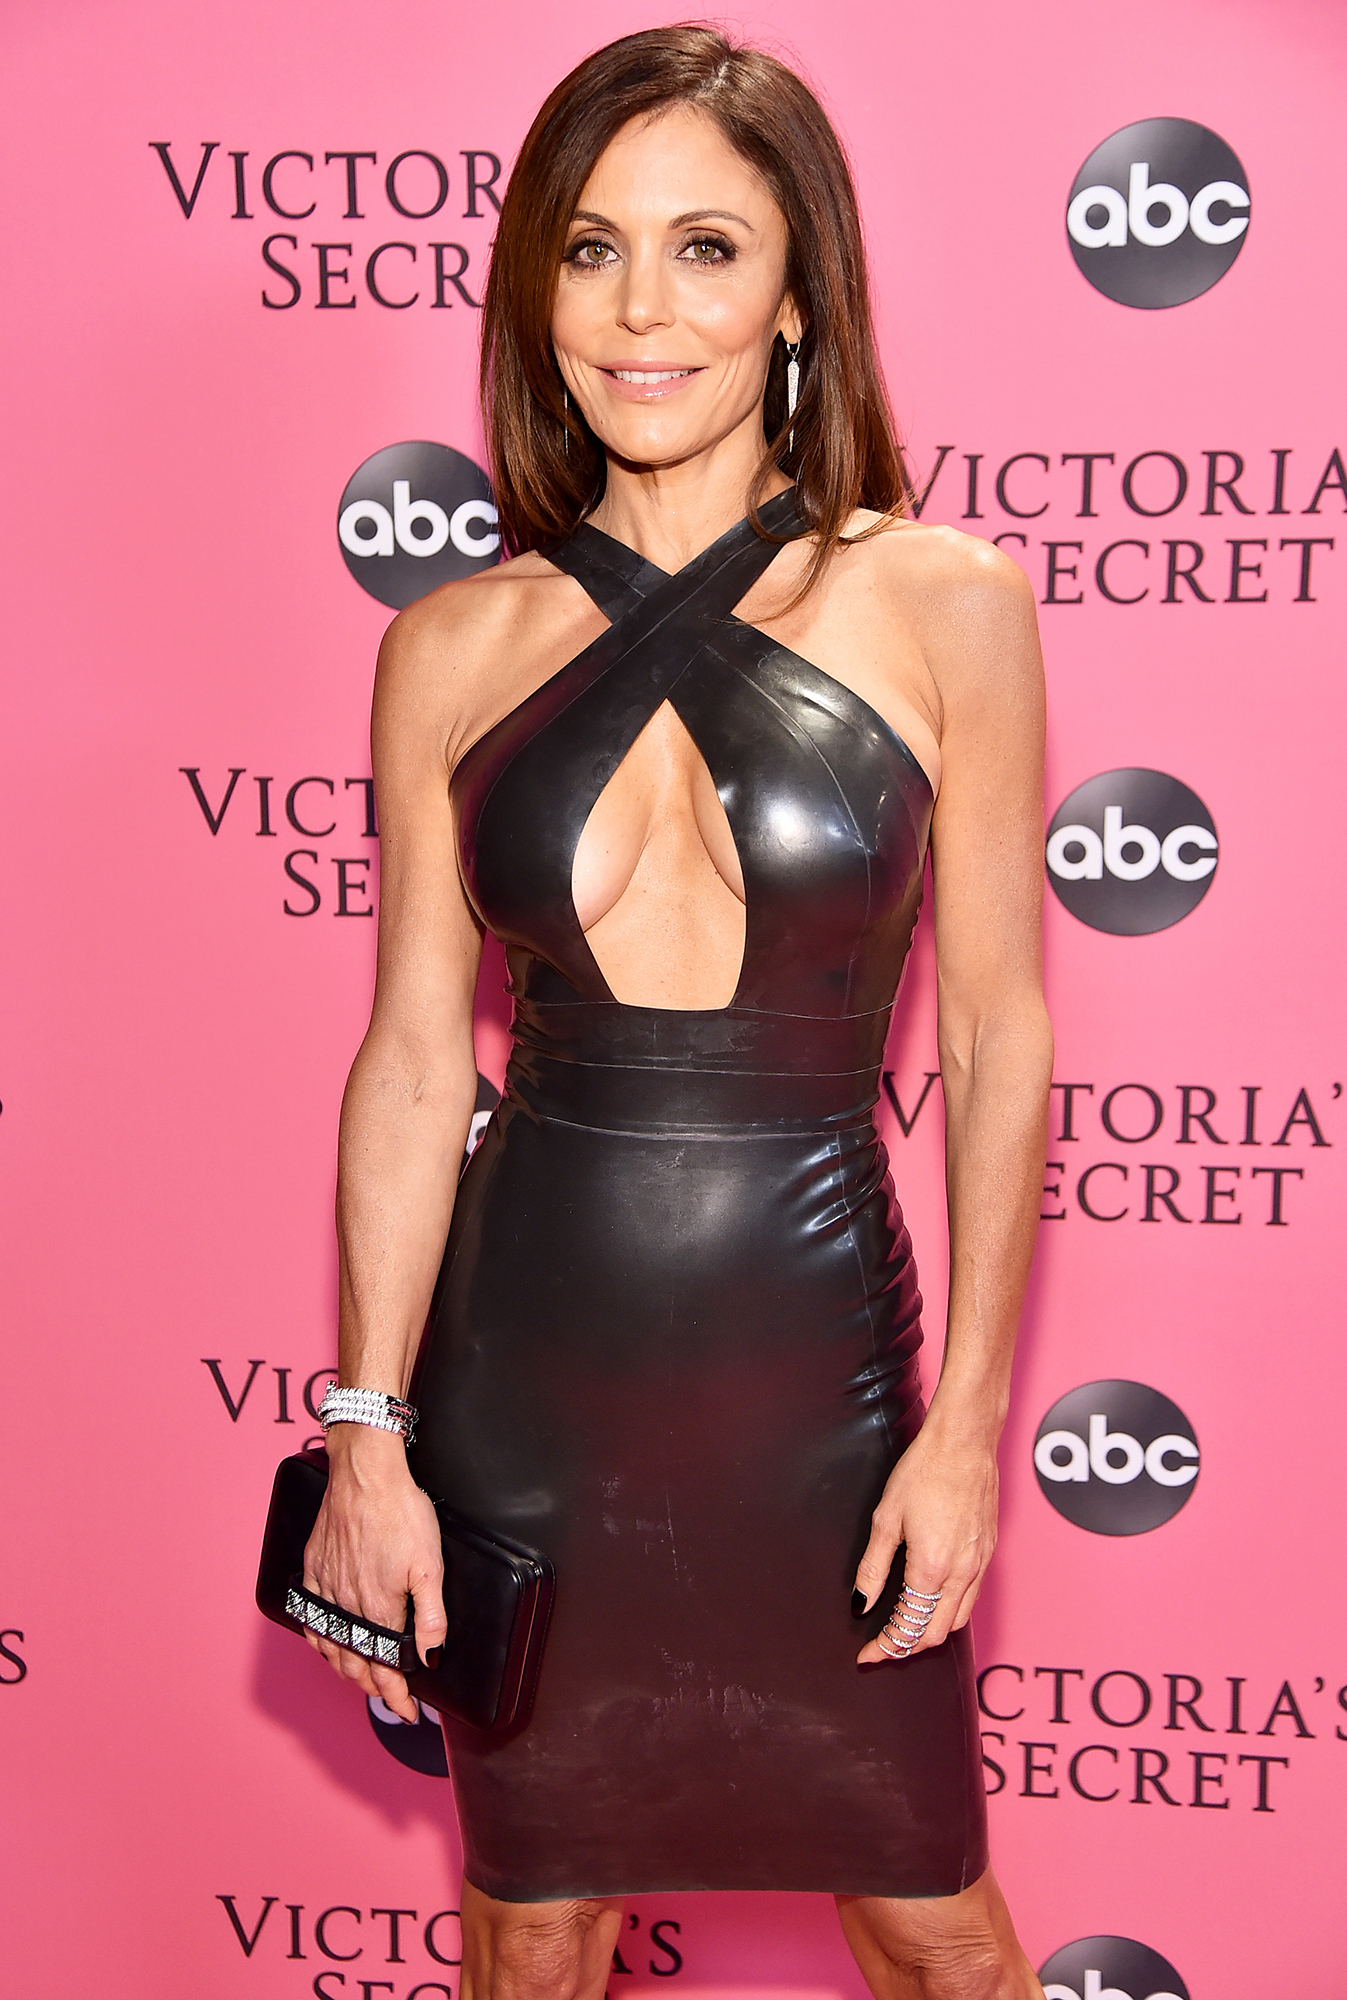 Bethenny Frankel Valentines Day Gift - Bethenny Frankel attends the Victoria's Secret Fashion Show at Pier 94 on November 8, 2018 in New York City.